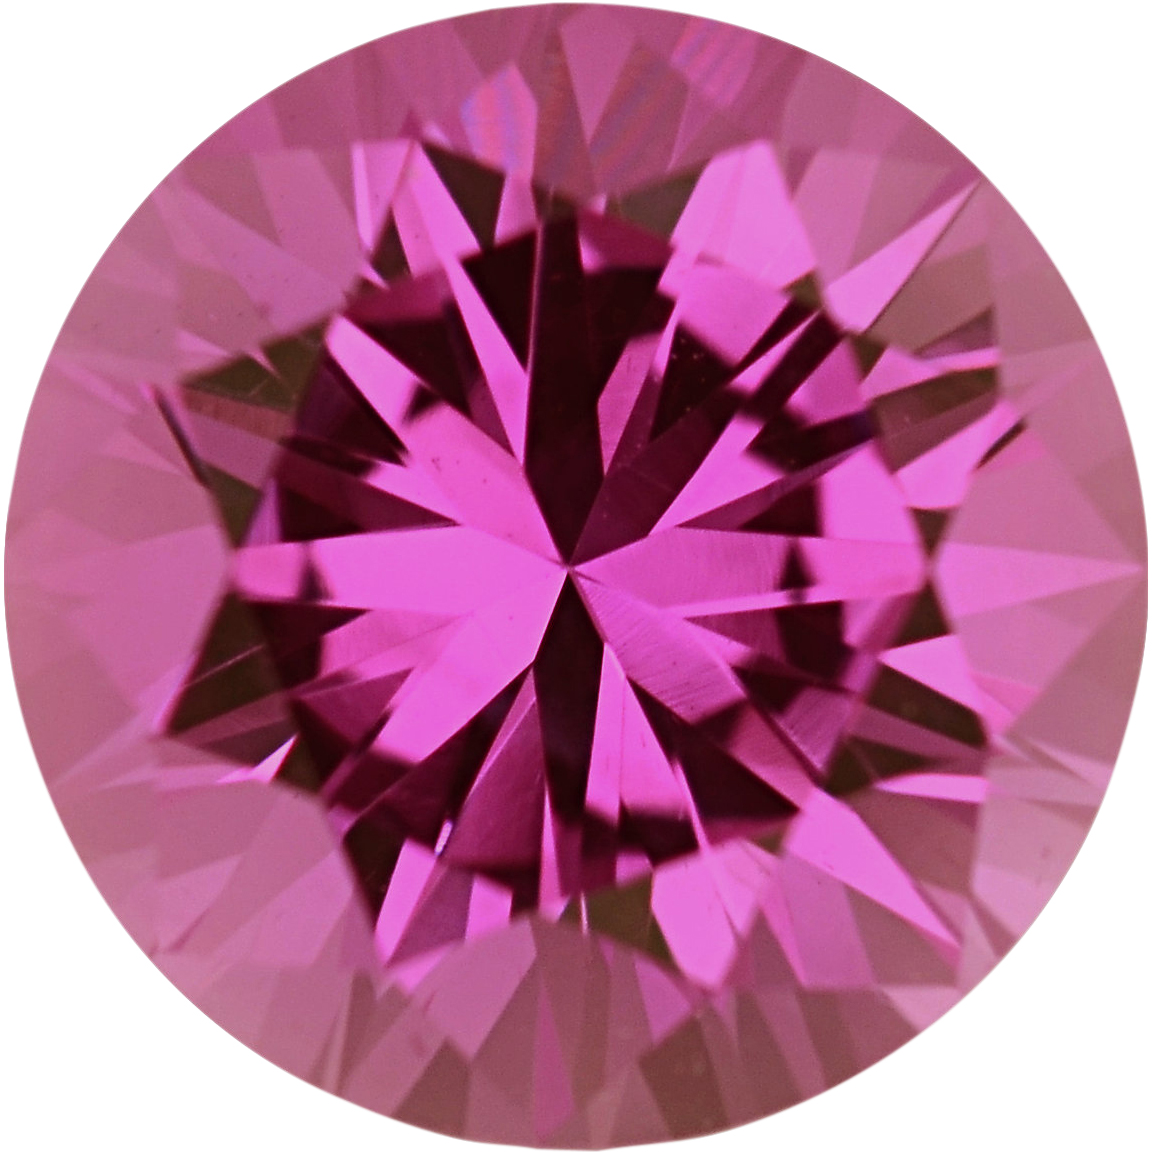 Dazzling Sapphire Loose Gem in Round Cut, Light Purple Pink, 5.6 mm, 0.85 Carats